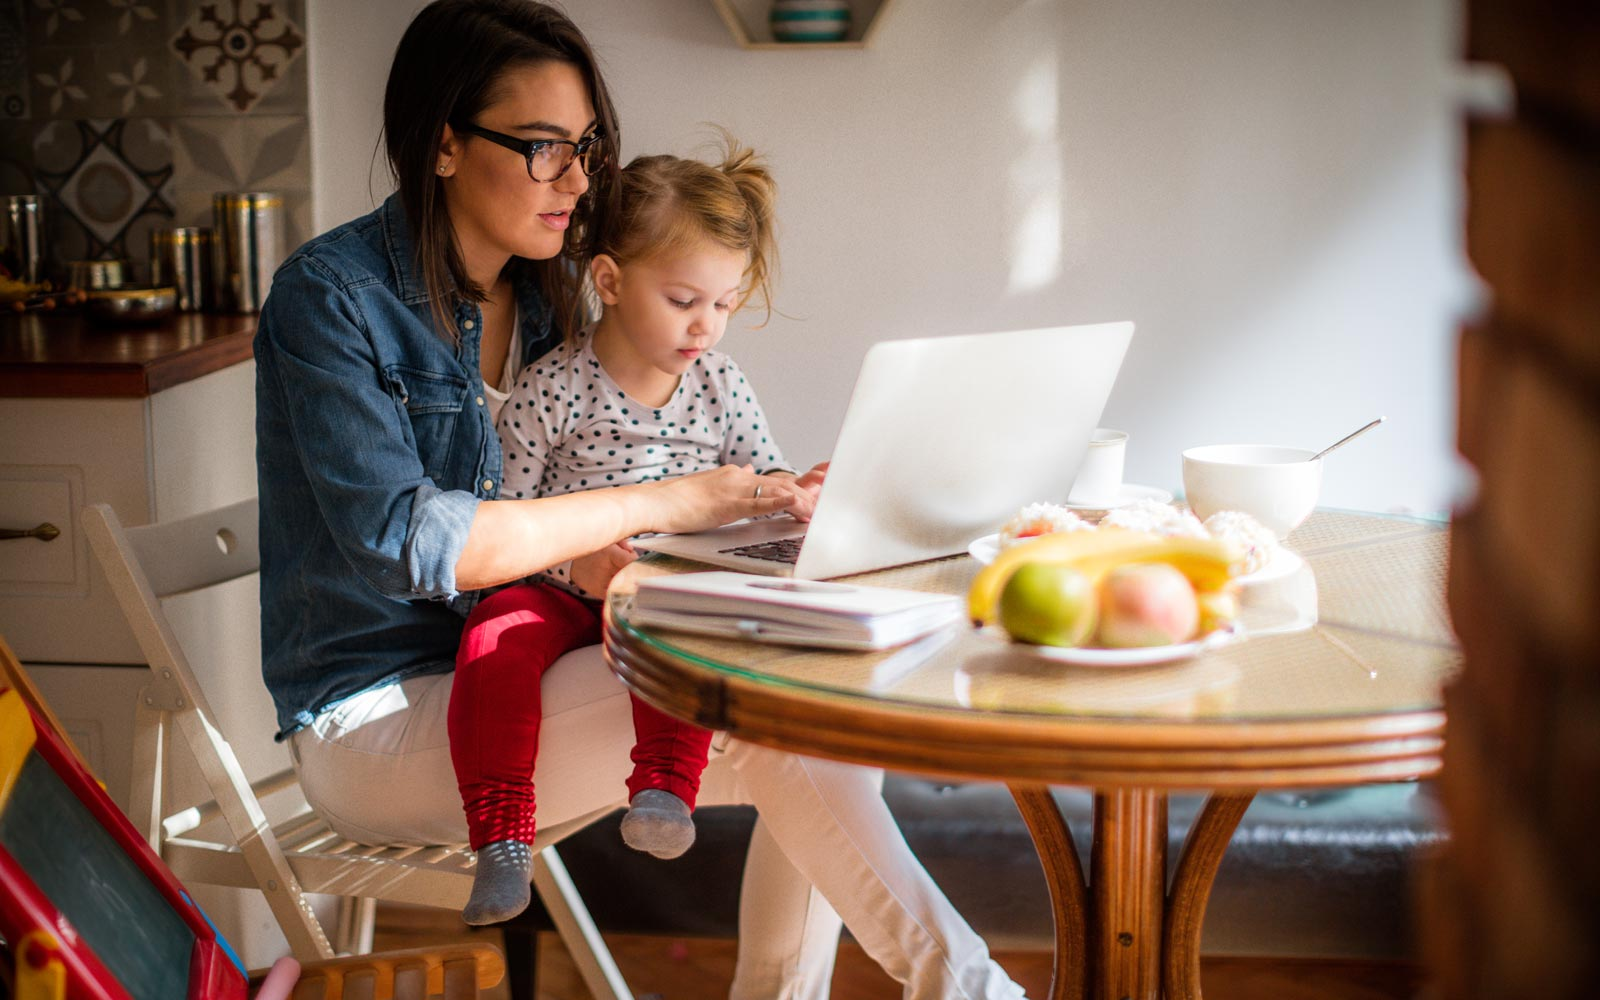 Young mother and child in kitchen studying online